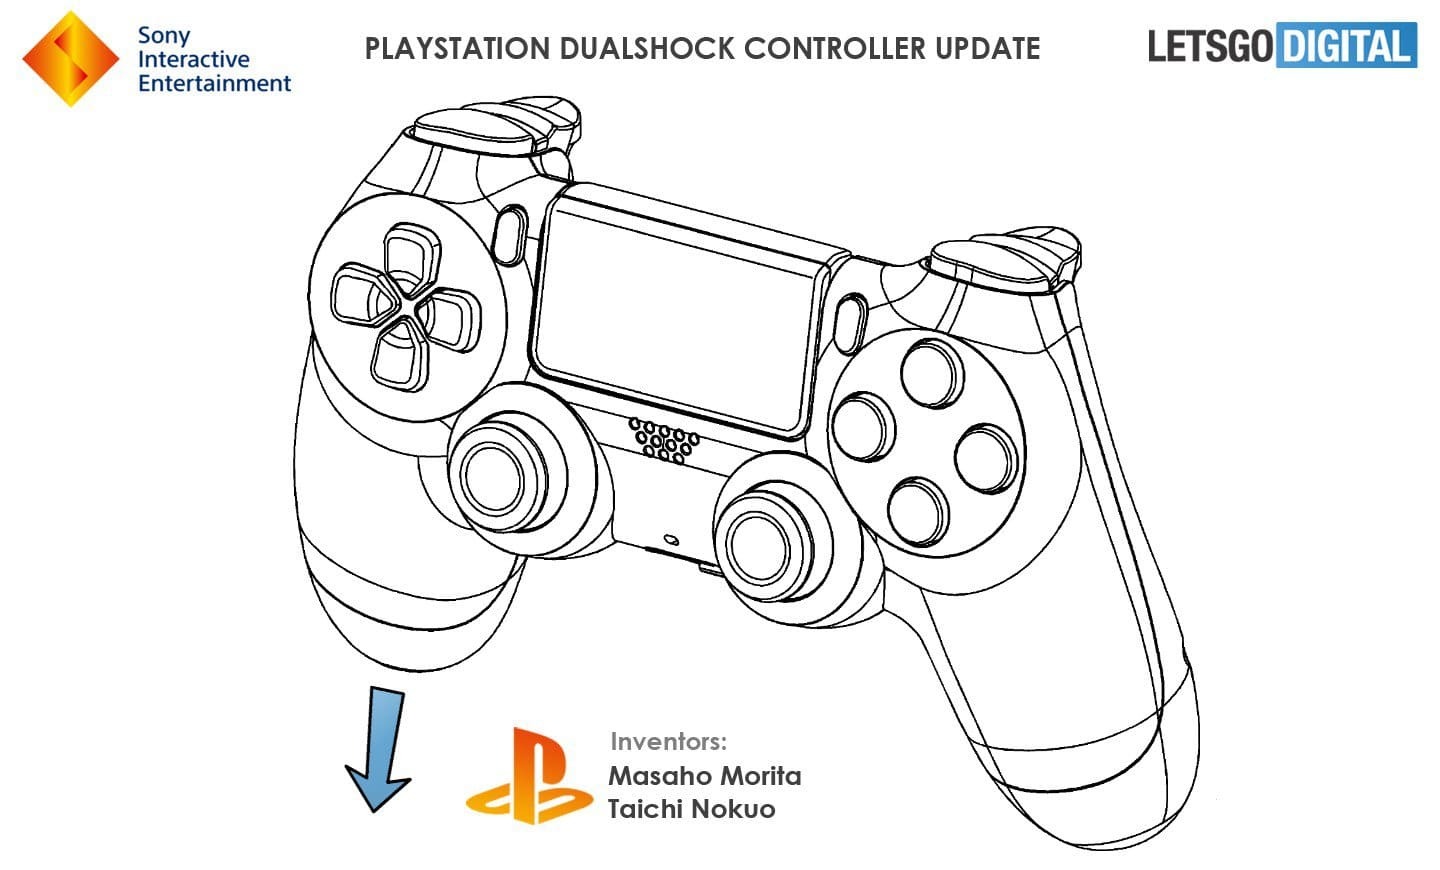 PlayStation 5 dualshock